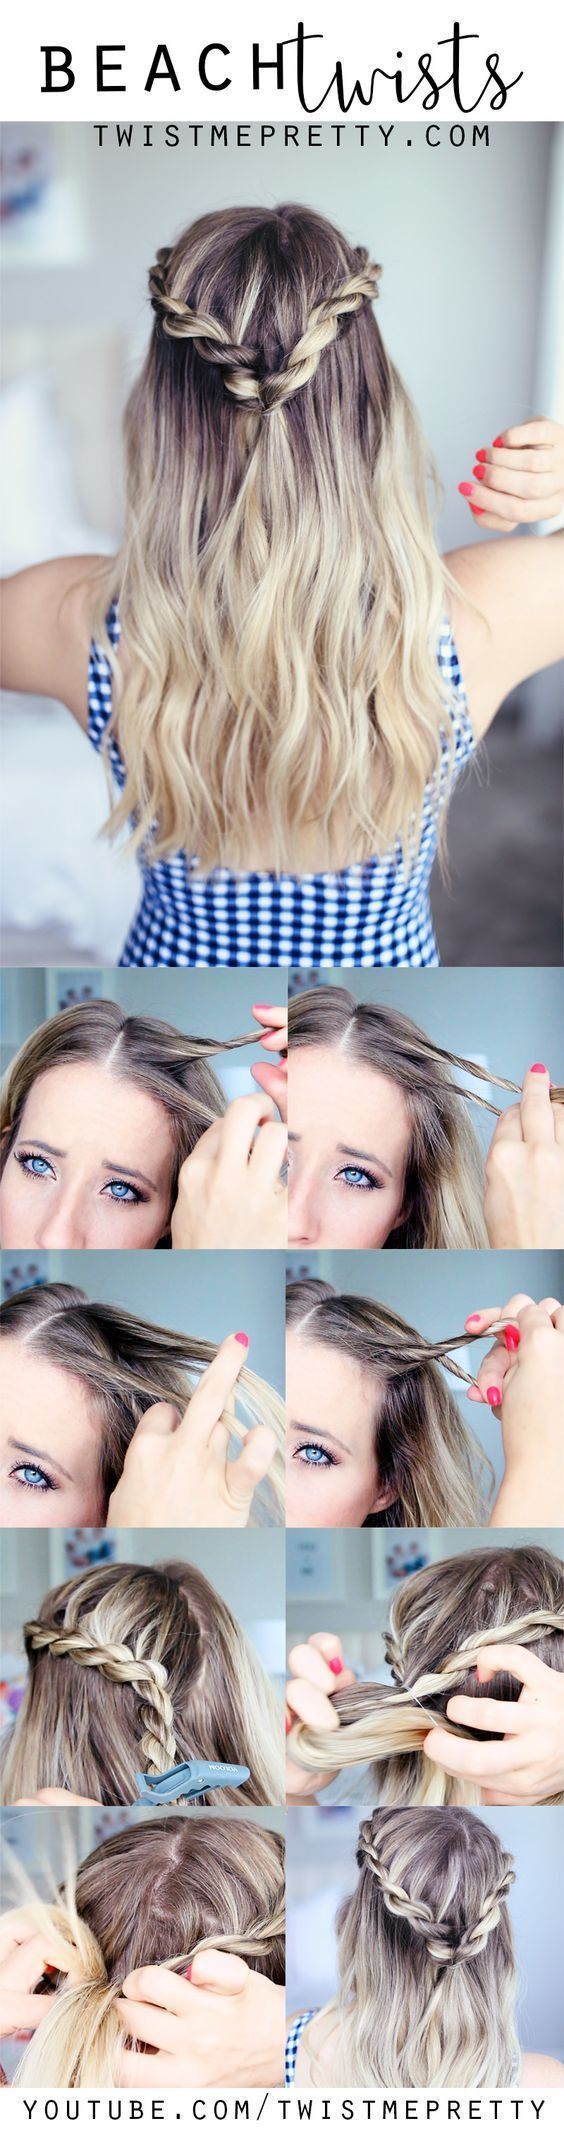 Classy And Simple Hairstyle Ideas For Thick Hair - Page 3 of 4 - Trend To Wear